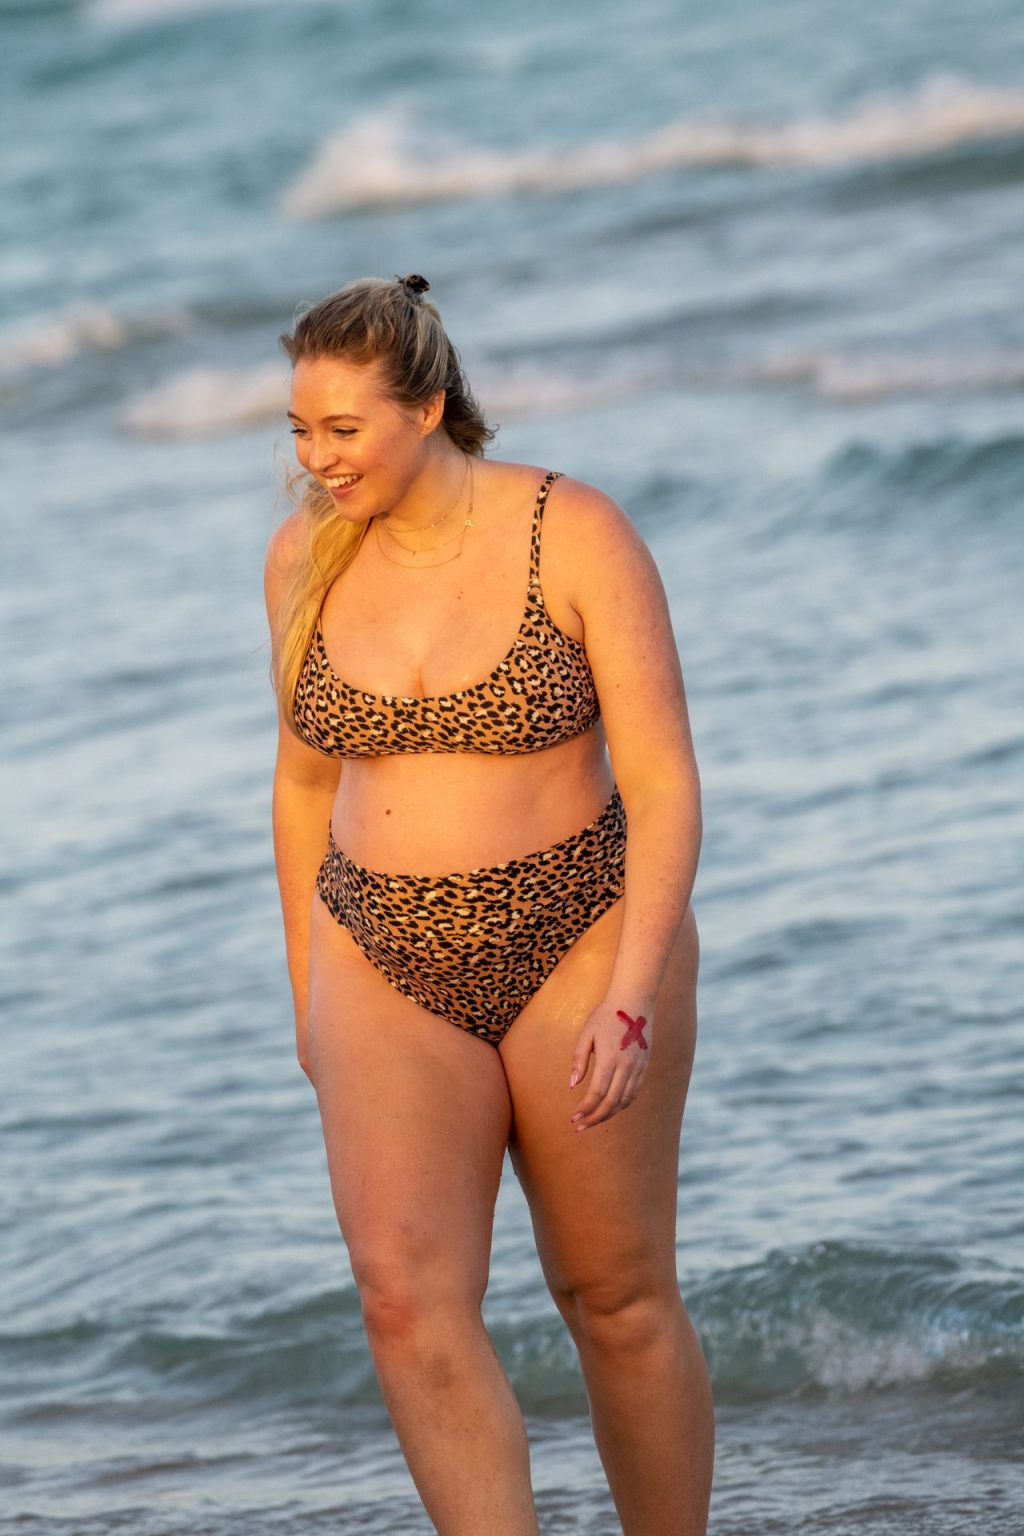 Iskra Lawrence Sexy The Fappening Blog 2 1024x1536 - Heavily Pregnant Model Iskra Lawrence Takes A Sunset Dip In Miami Beach (44 Photos)